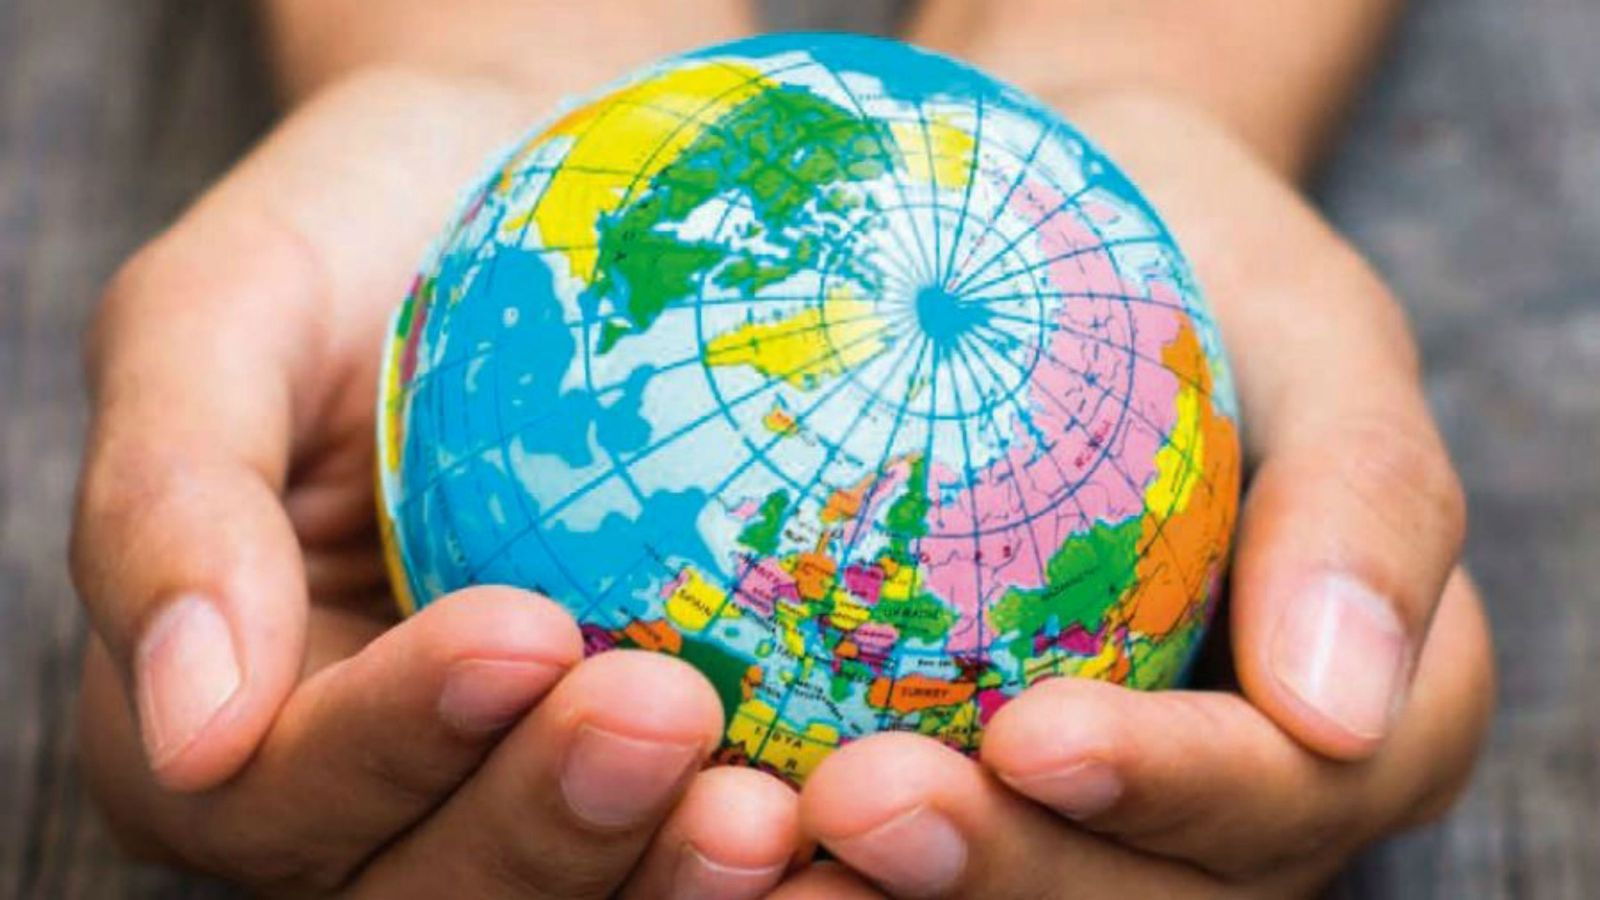 A small, colourful globe sitting in two hands.